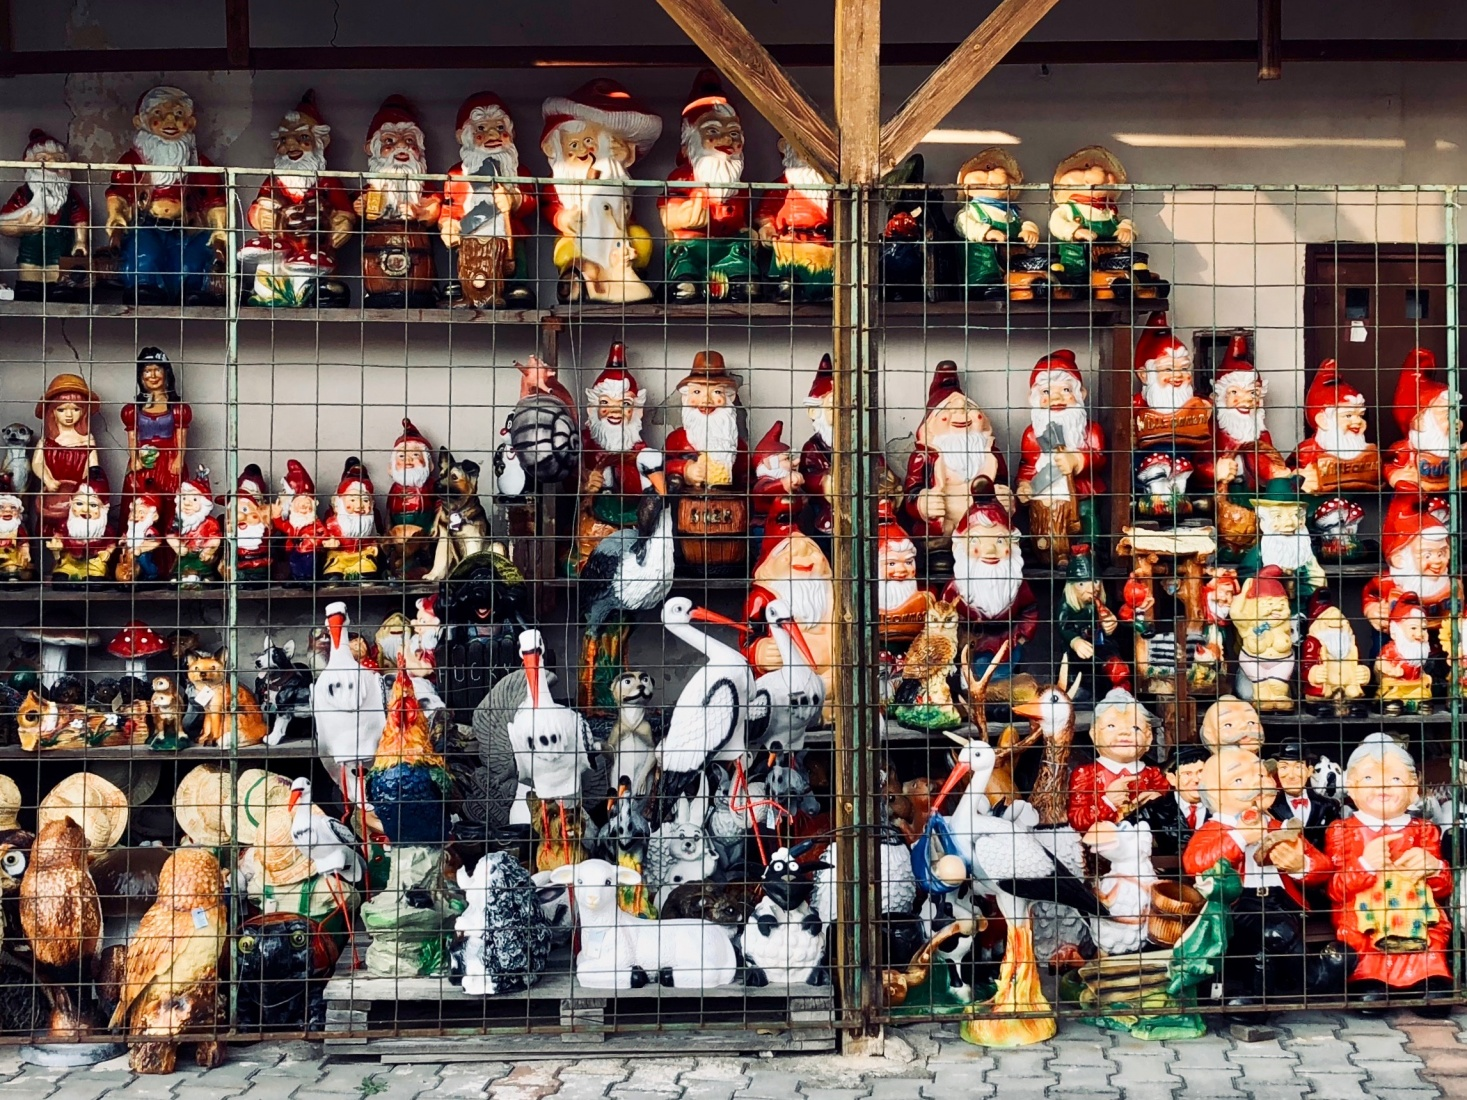 A wide assortment of garden gnomes for sale in České Velenice, Czech Republic.